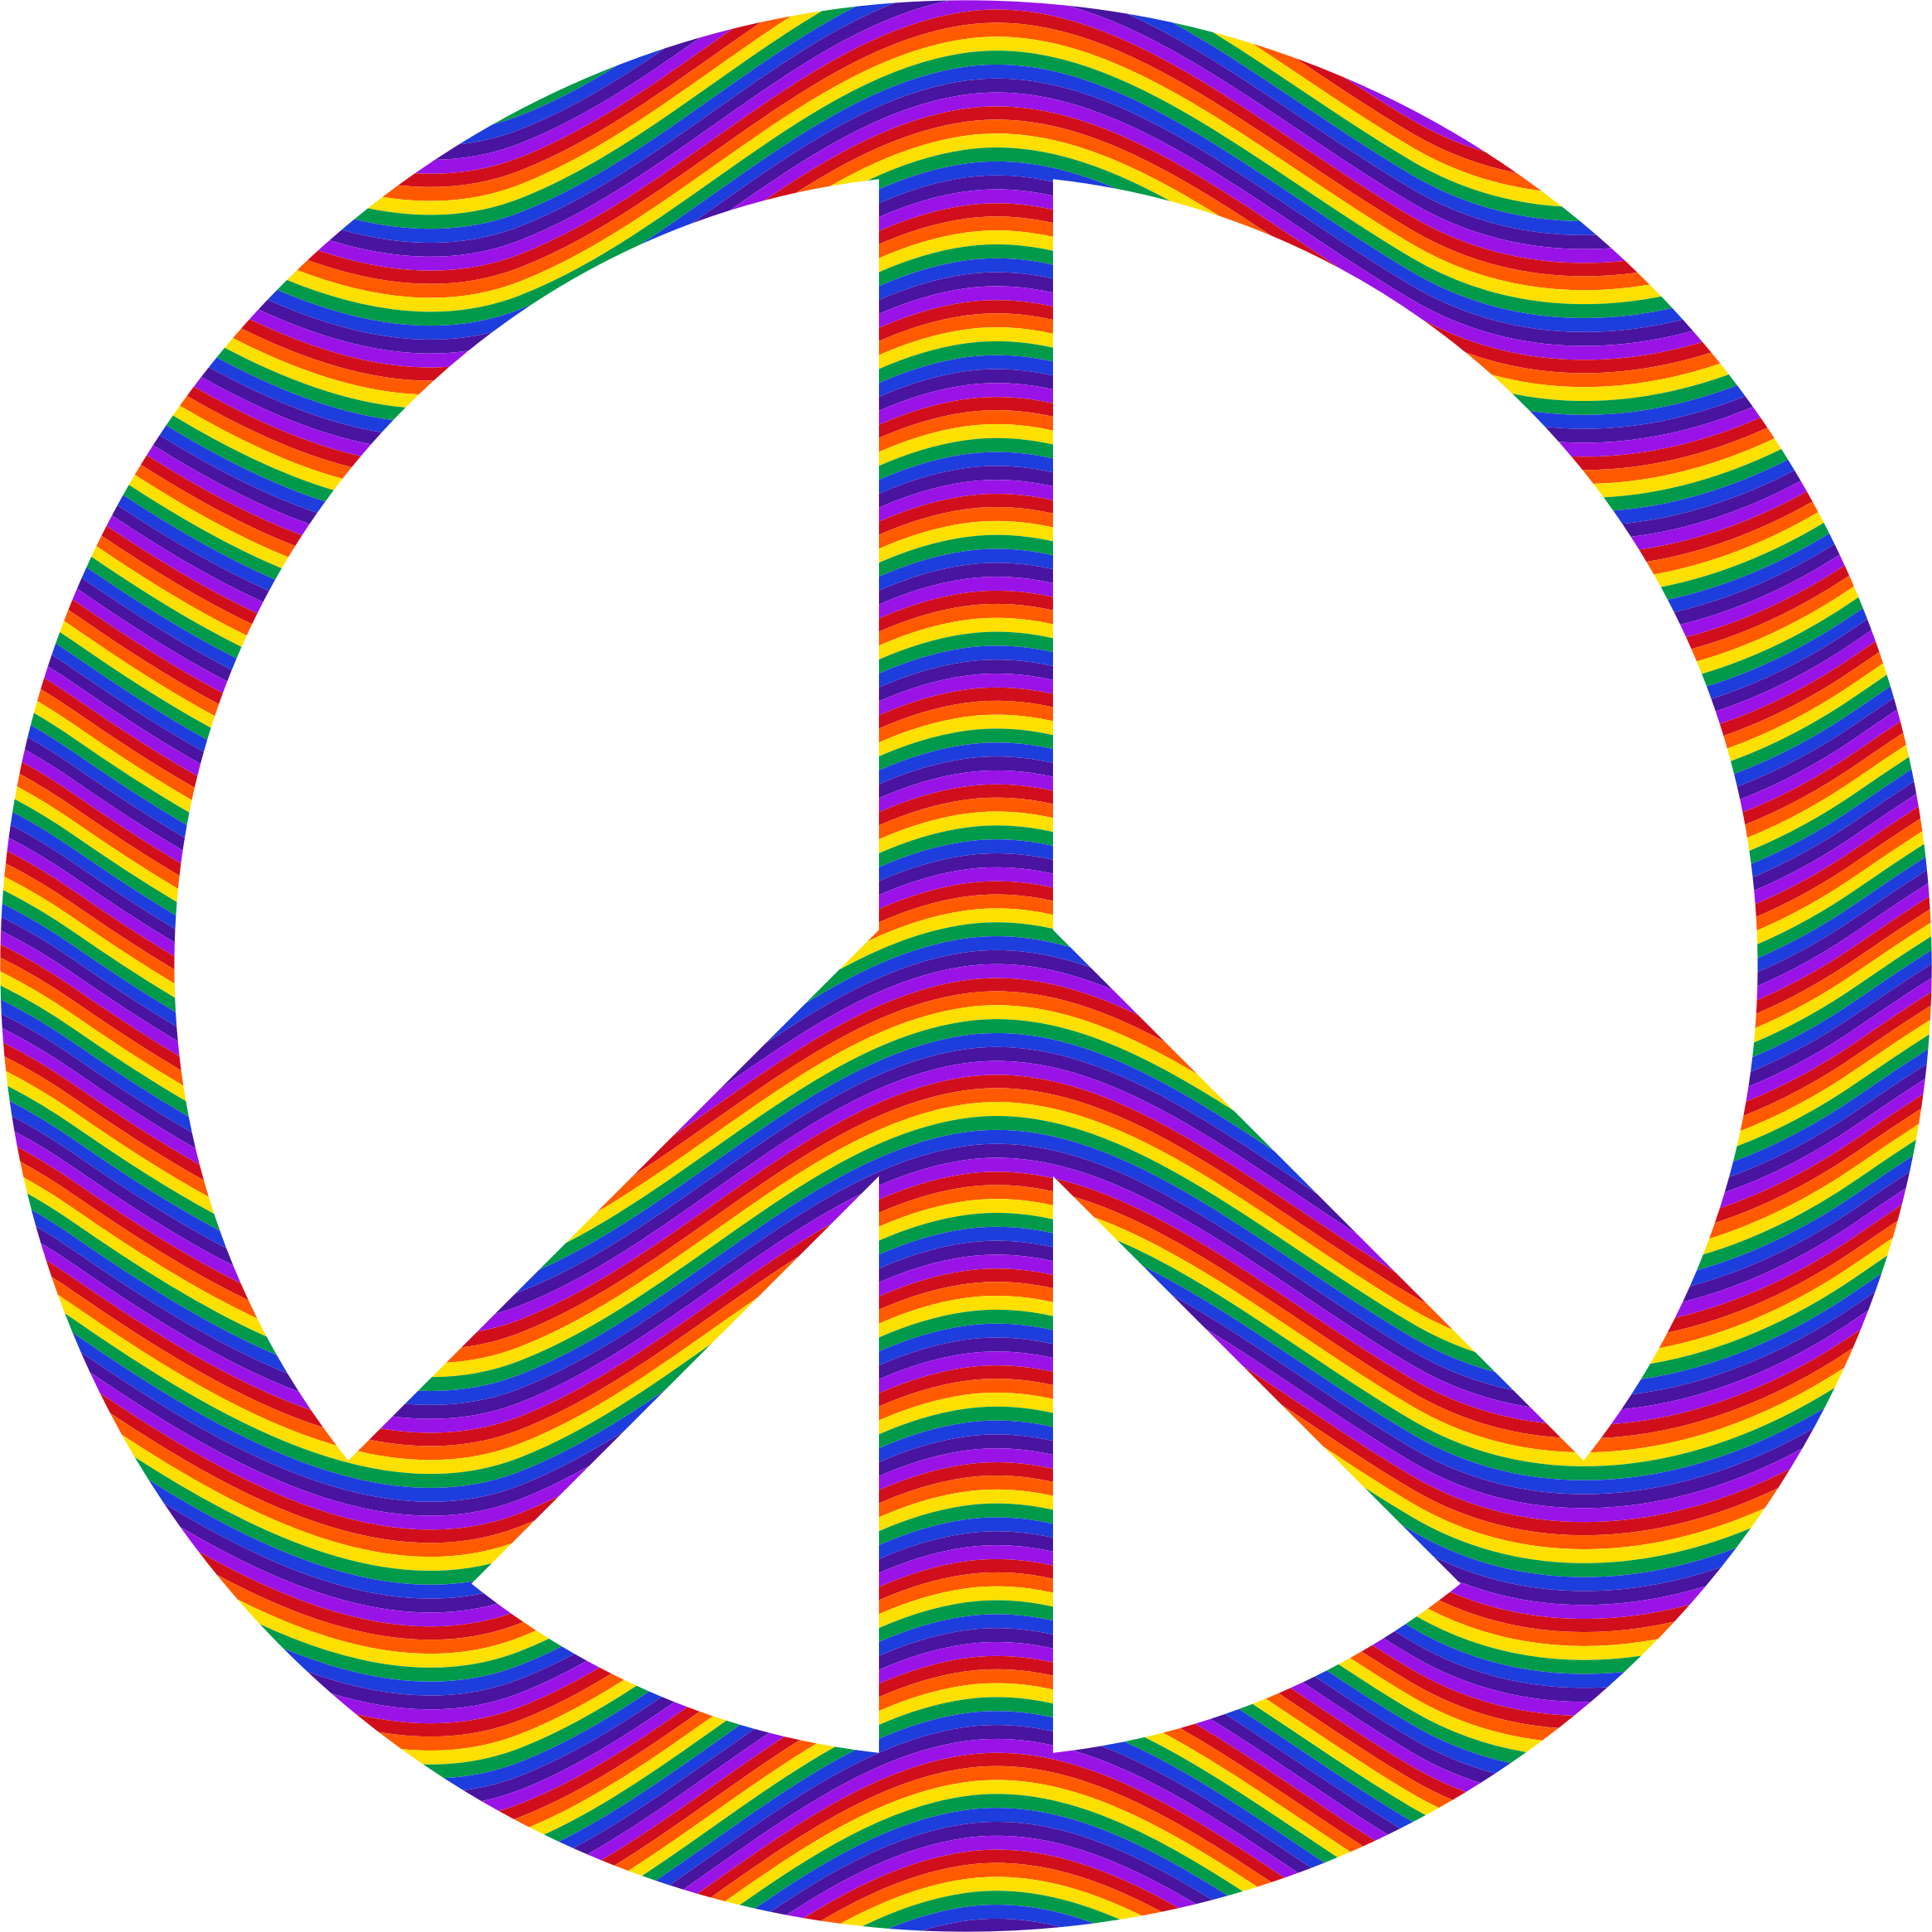 Peace sign big image. Waves clipart rainbow